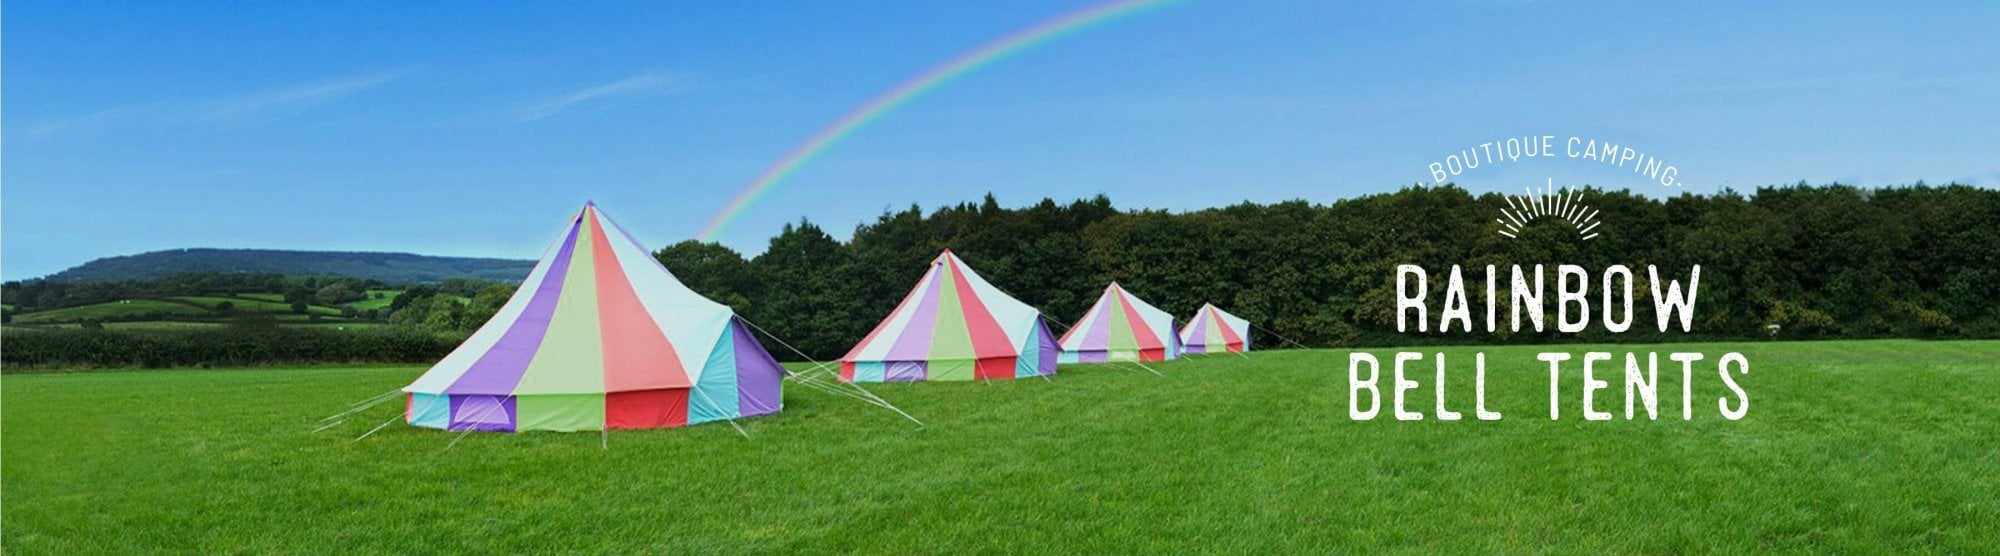 Rainbow Bell Tents